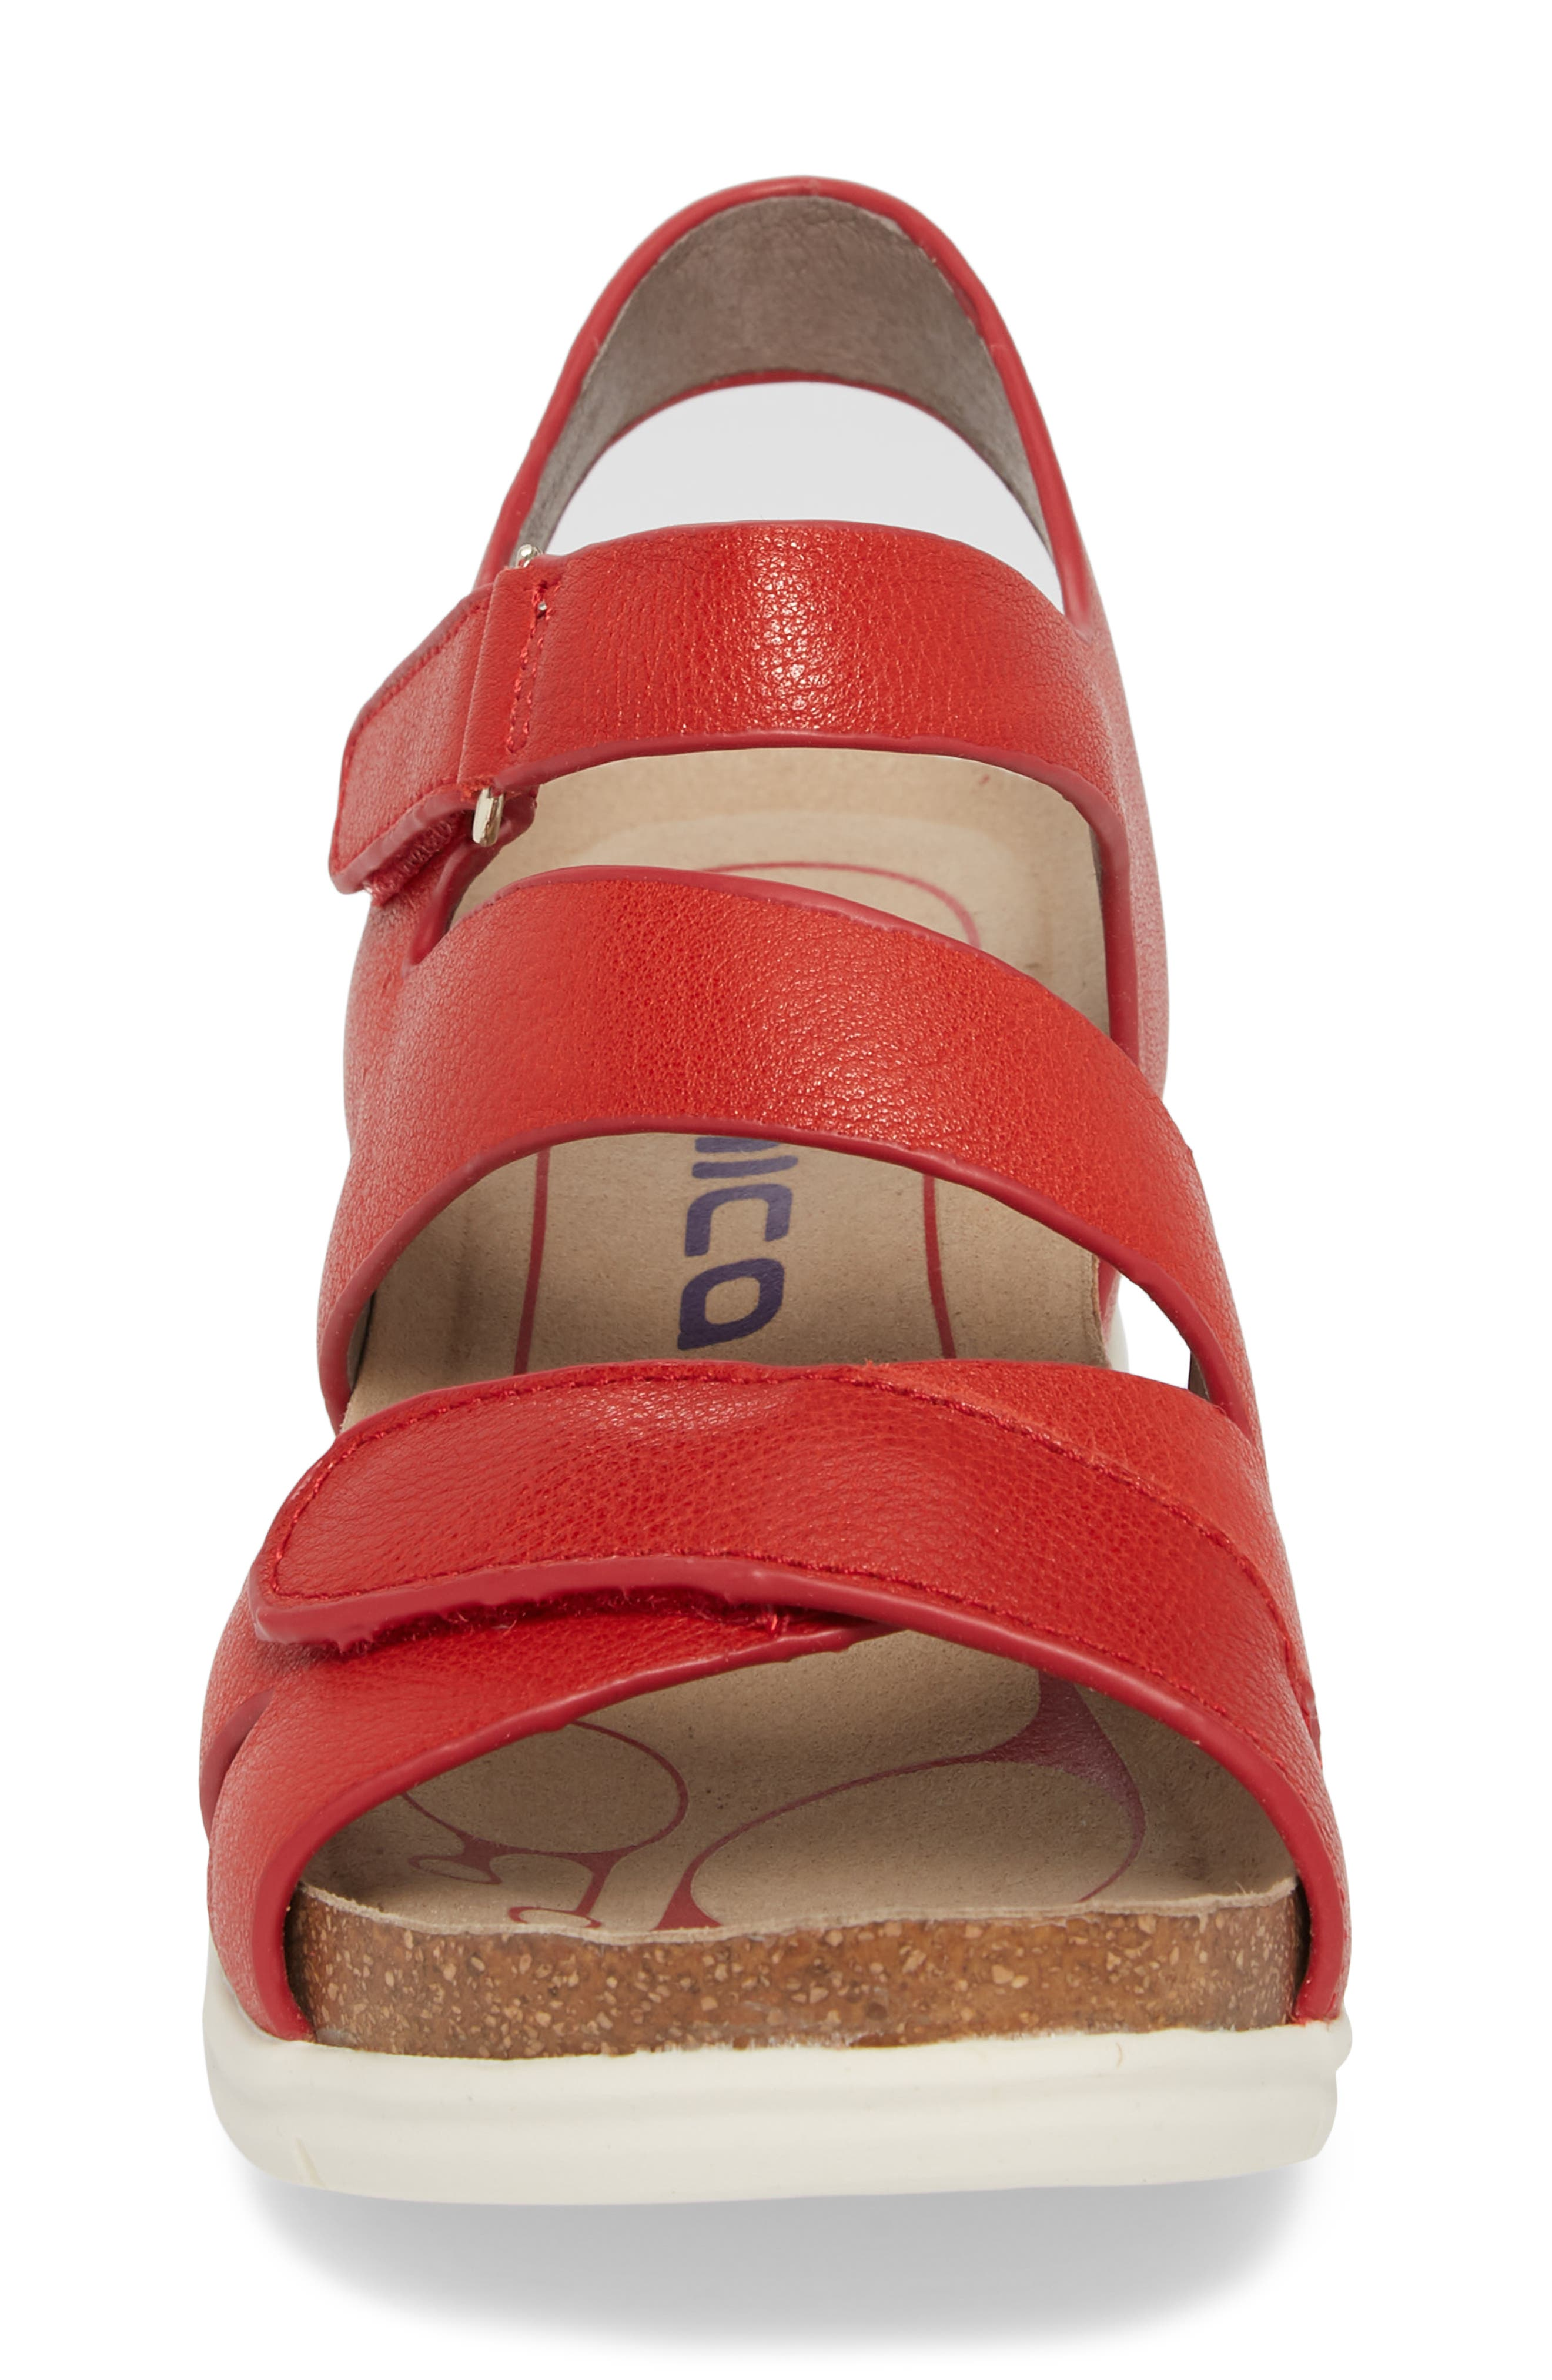 Passion Wedge Sandal,                             Alternate thumbnail 4, color,                             Fire Red Leather